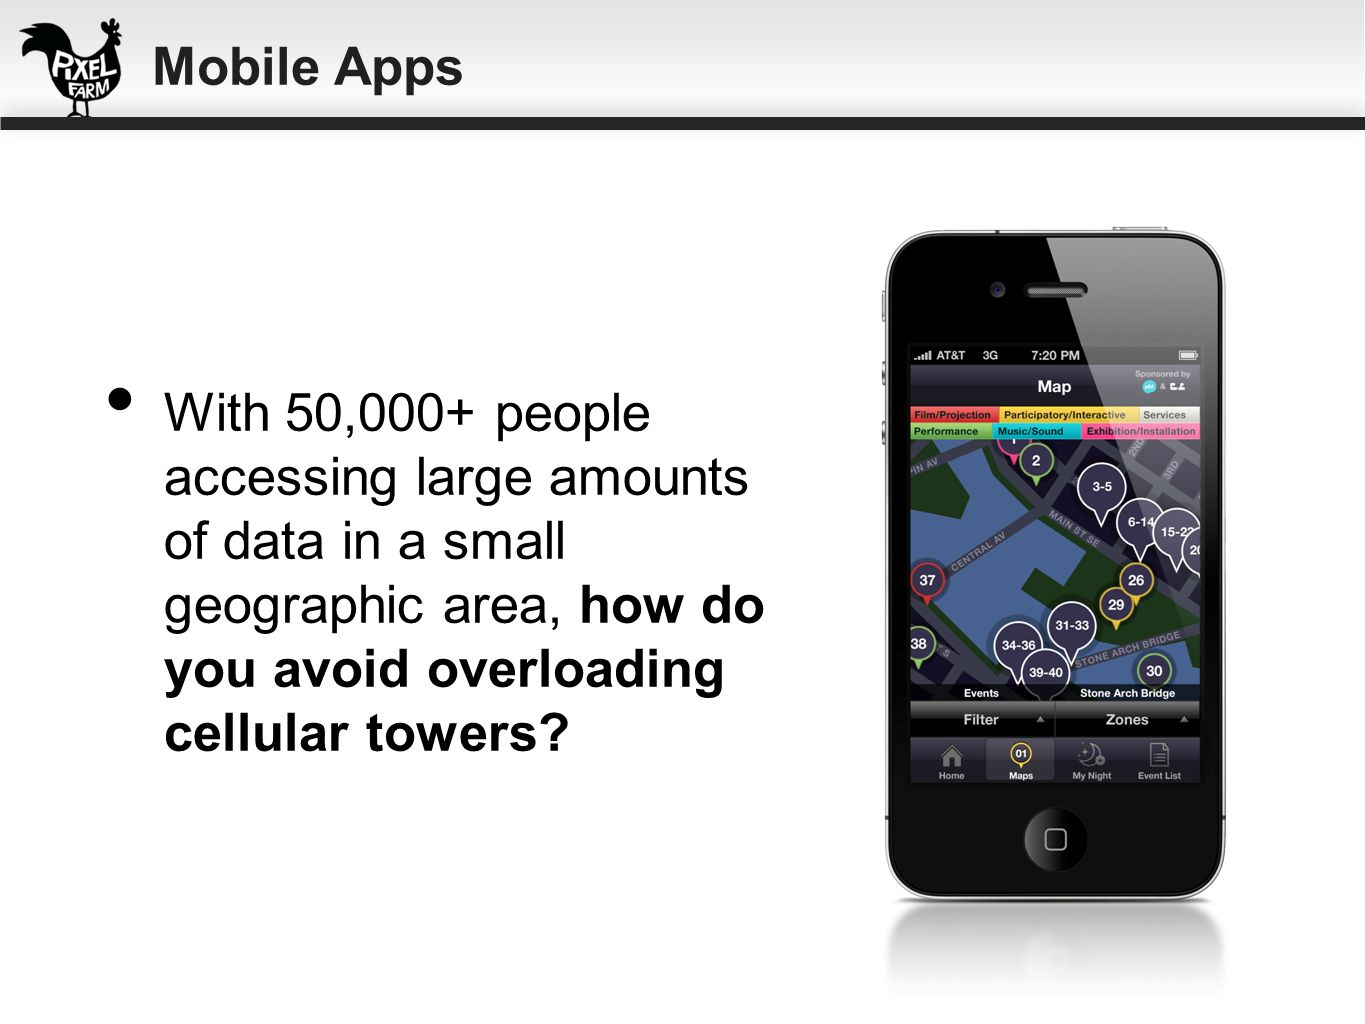 Mobile Apps With 50,000+ people accessing large amounts of data in a small geographic area, how do you avoid overloading cellular towers